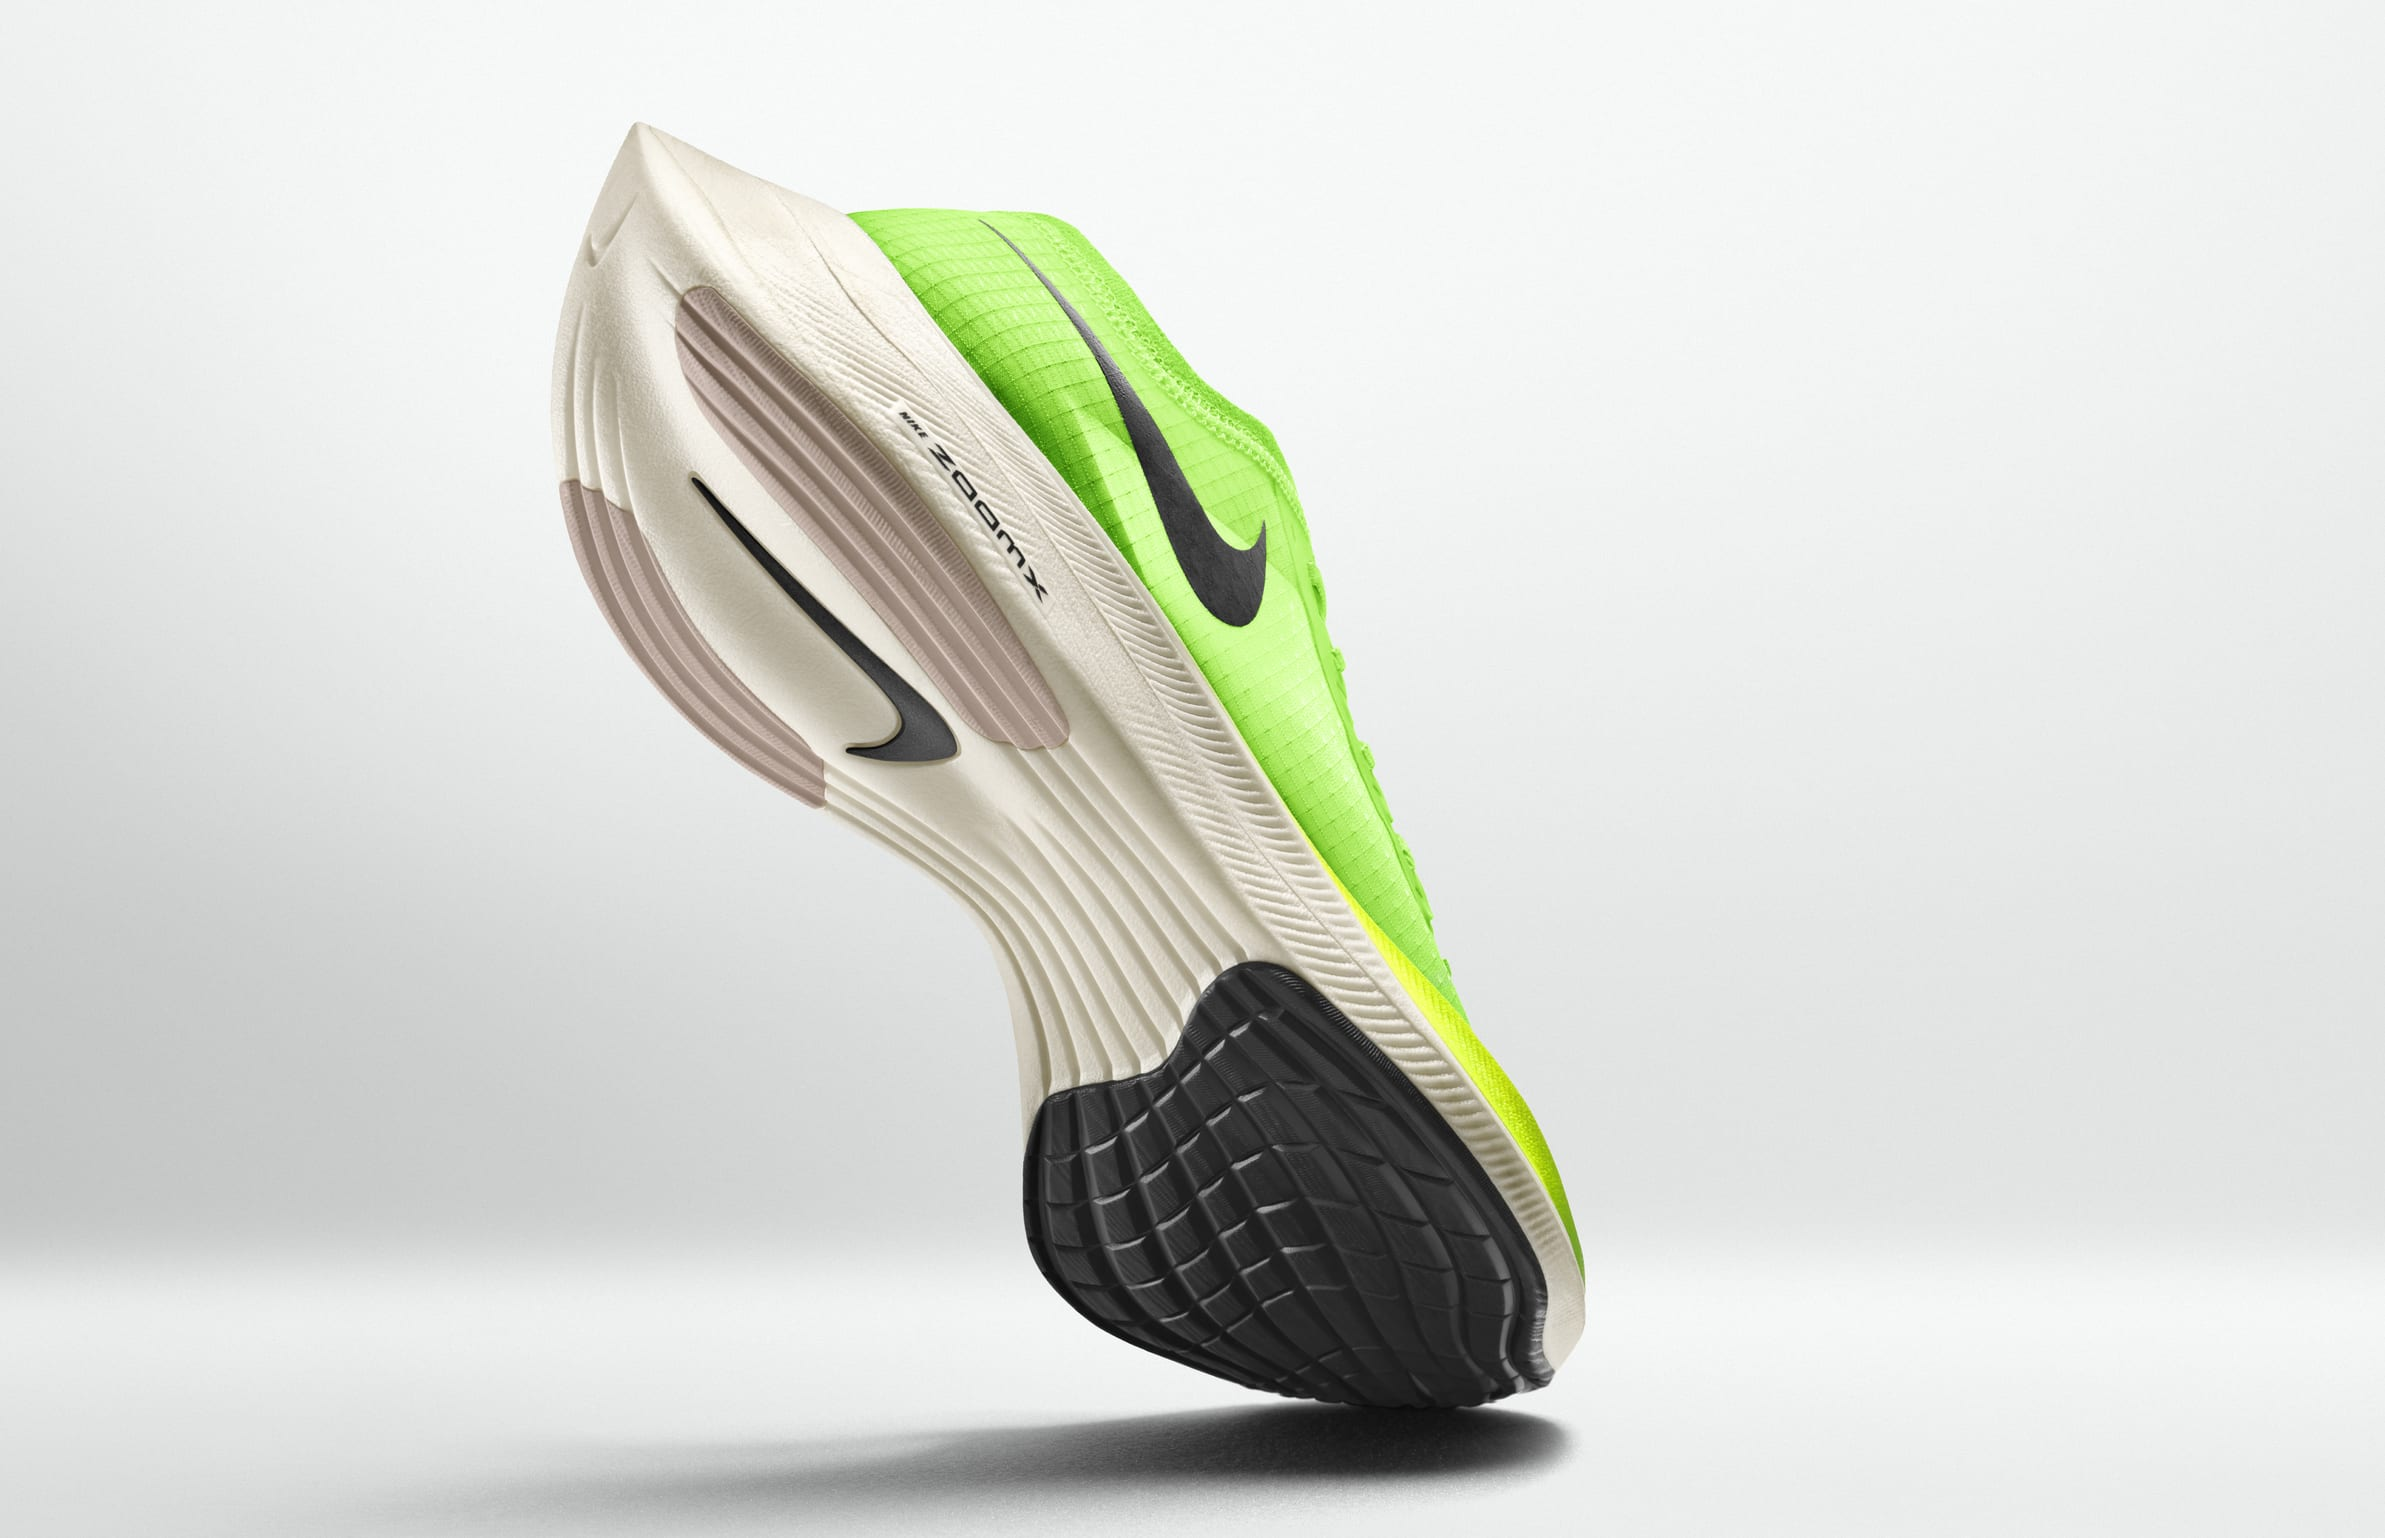 Nike ZoomX Vaporfly Next% (Lateral Sole)